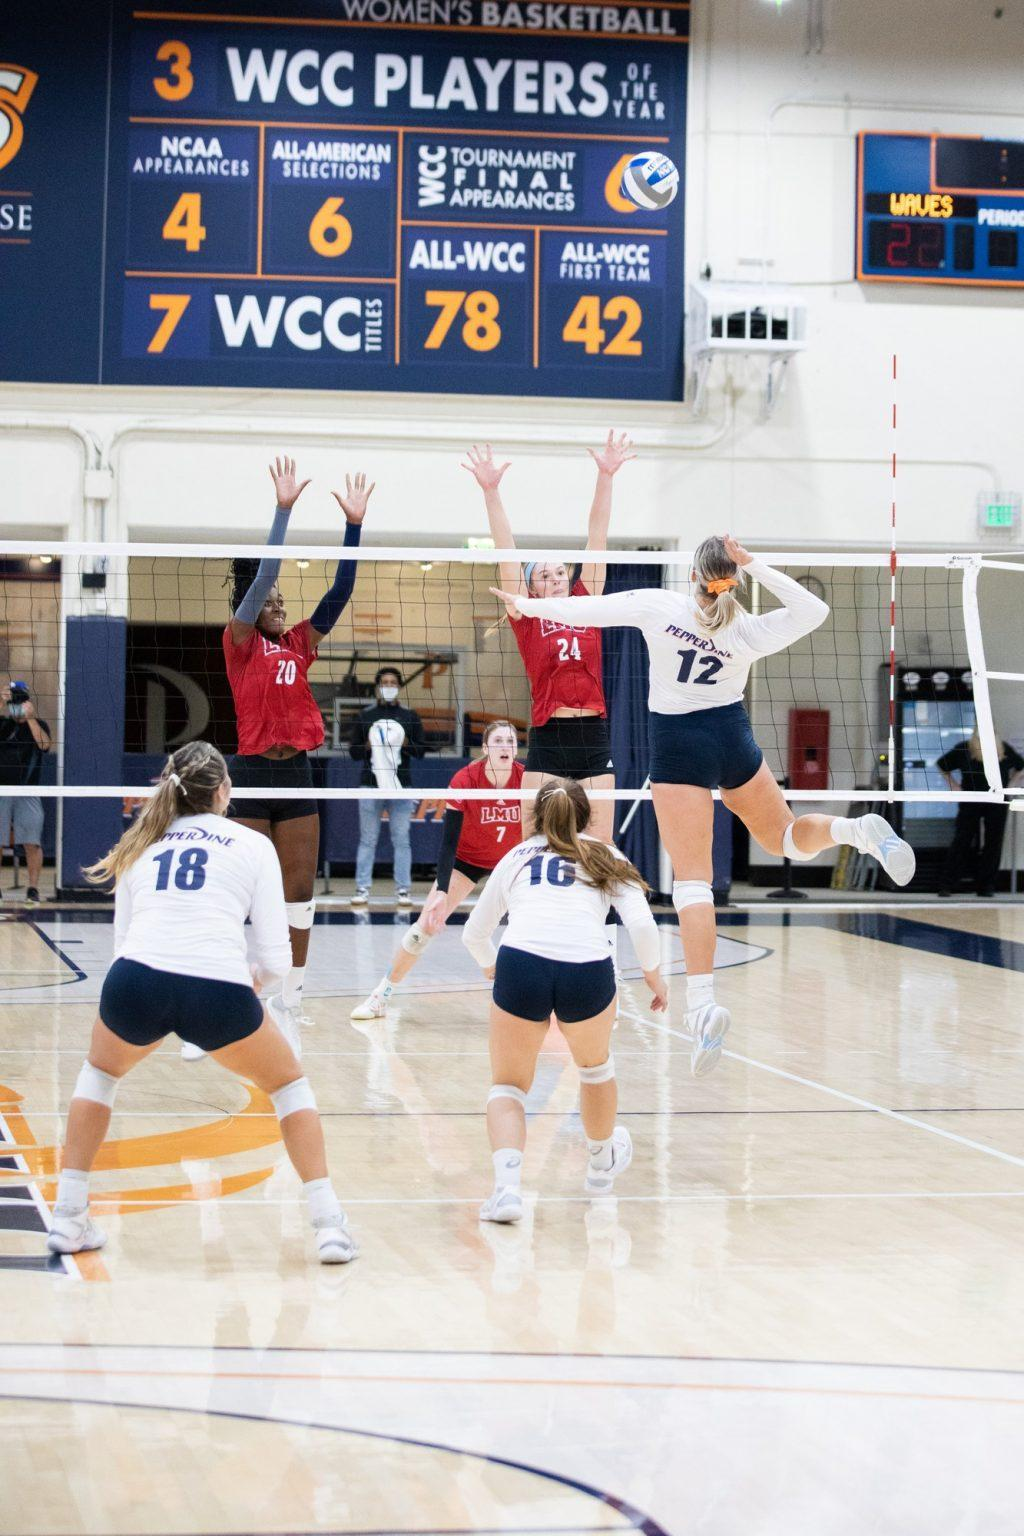 Sophomore middle blocker Meg Brown goes for a spike against LMU blockers Oct. 2. The Waves have a six game win streak, with Brown starting each match.